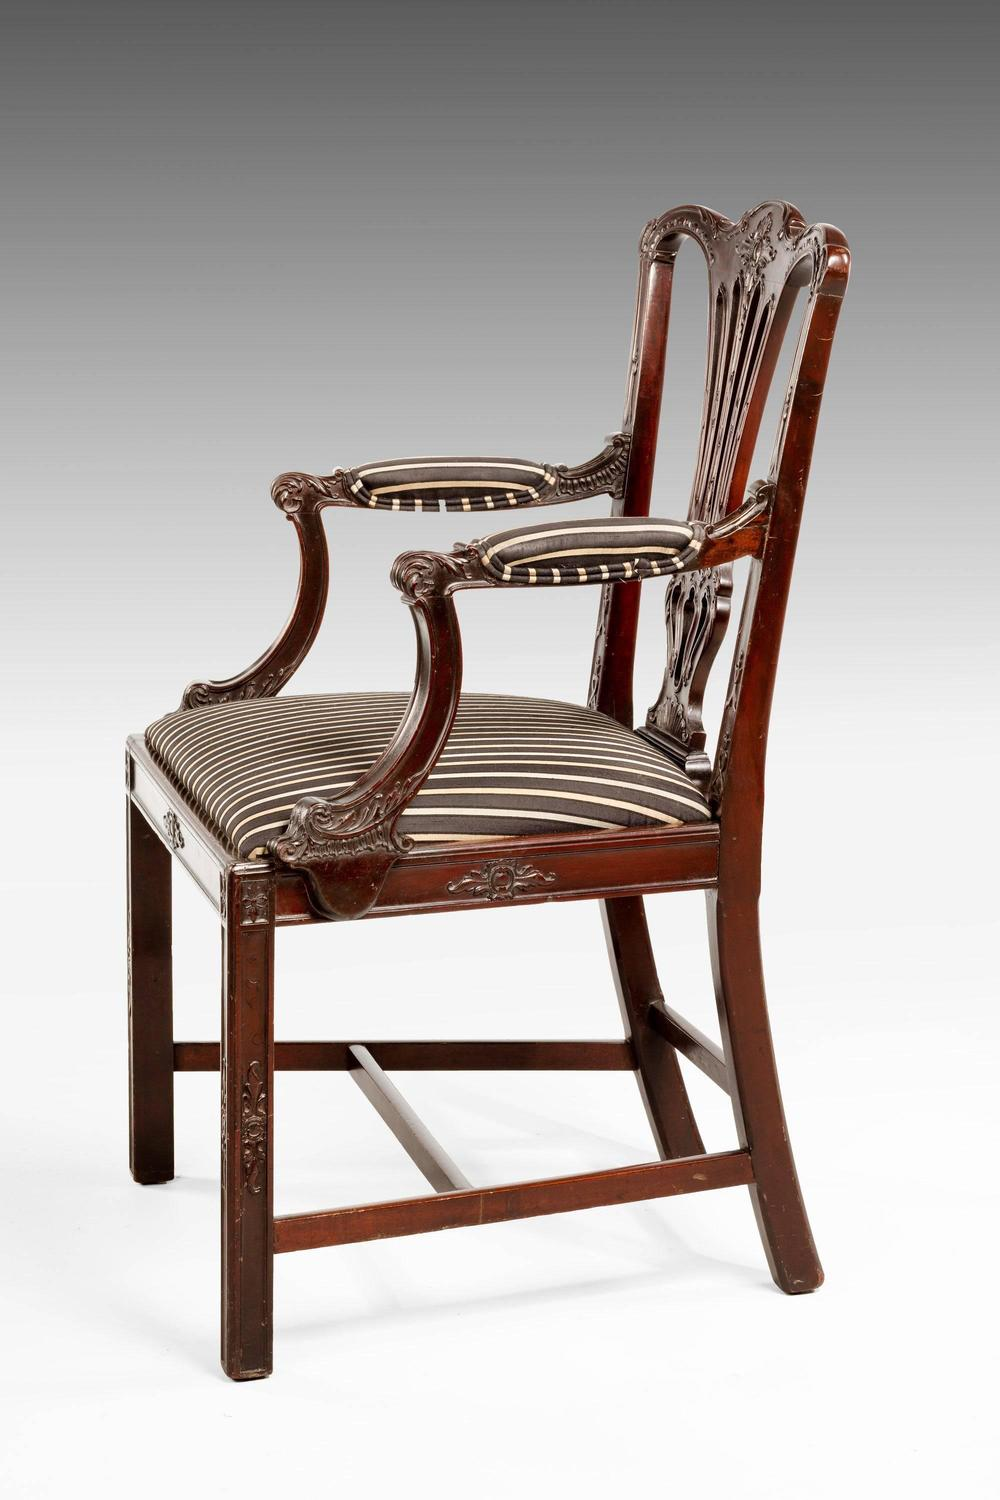 chippendale style mahogany elbow chair for sale at 1stdibs. Black Bedroom Furniture Sets. Home Design Ideas